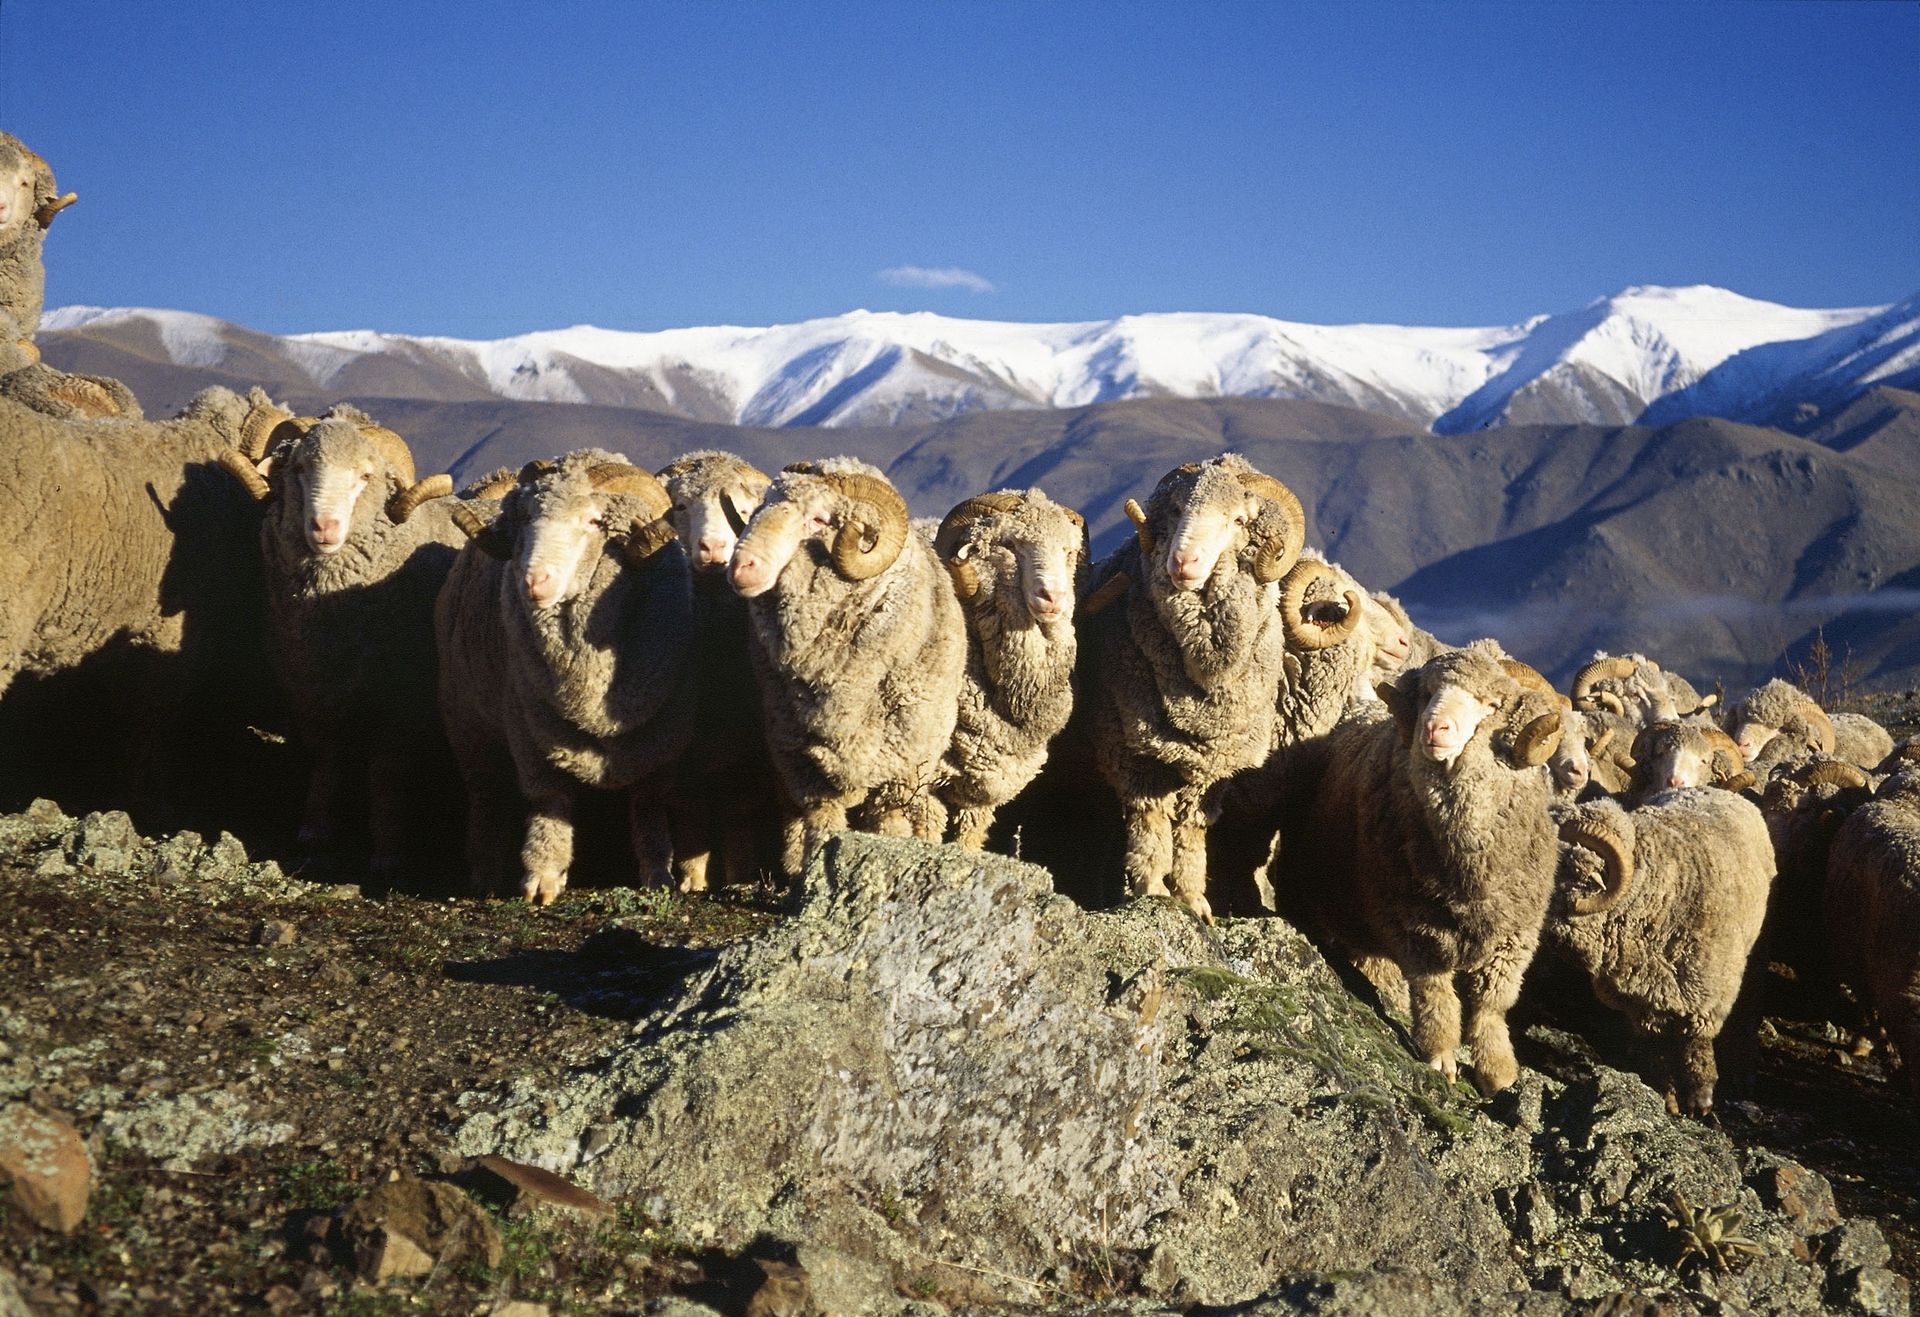 NZ Merino inks 5-year, $45M contract with Italy's Reda - NZ